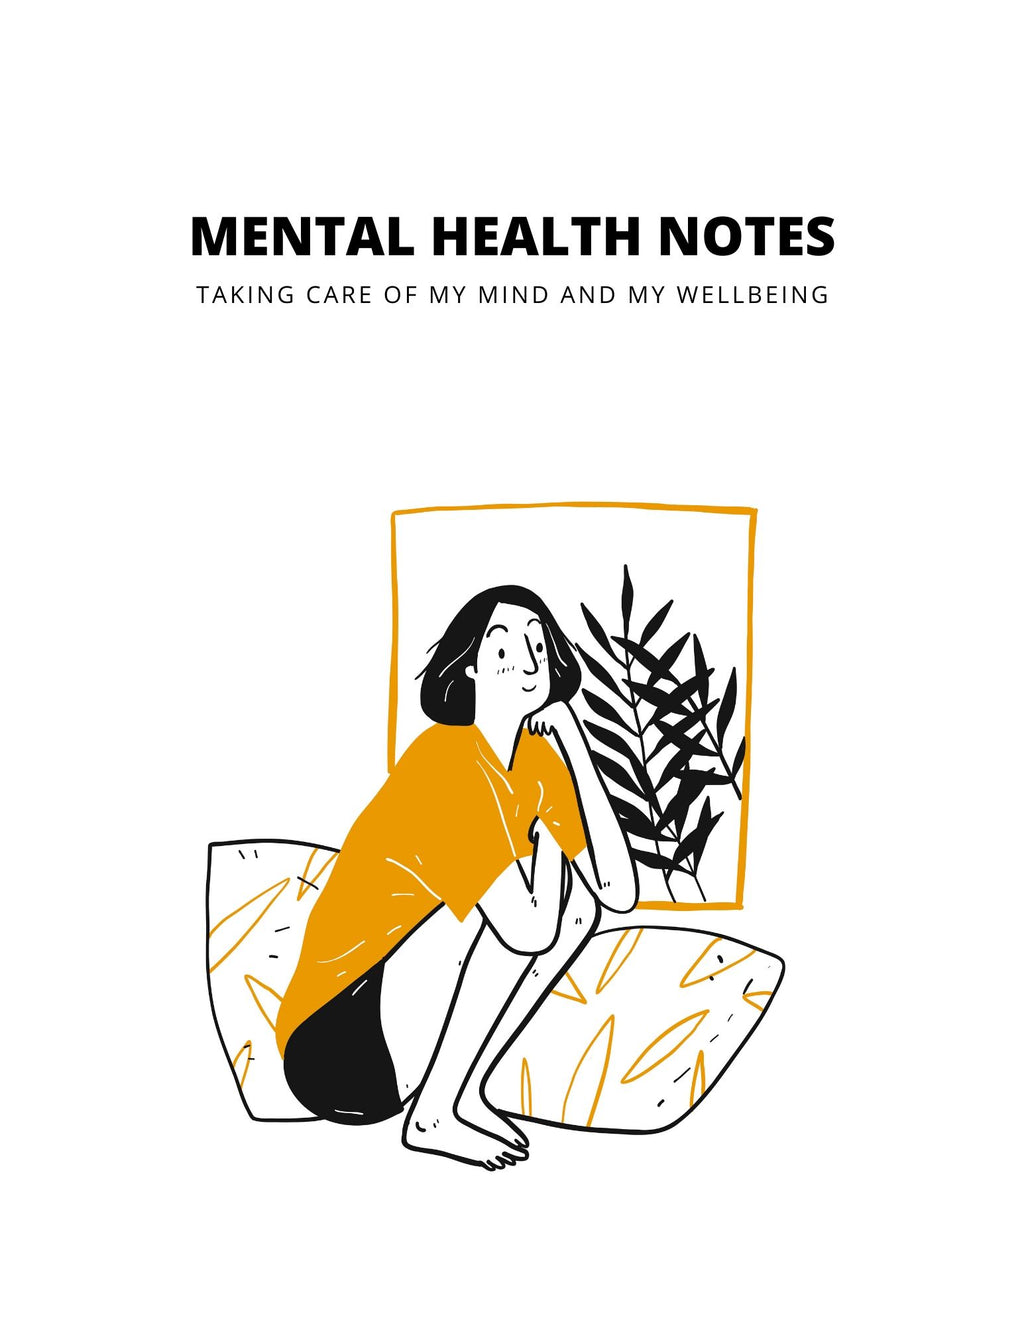 MENTAL HEALTH TRACKER